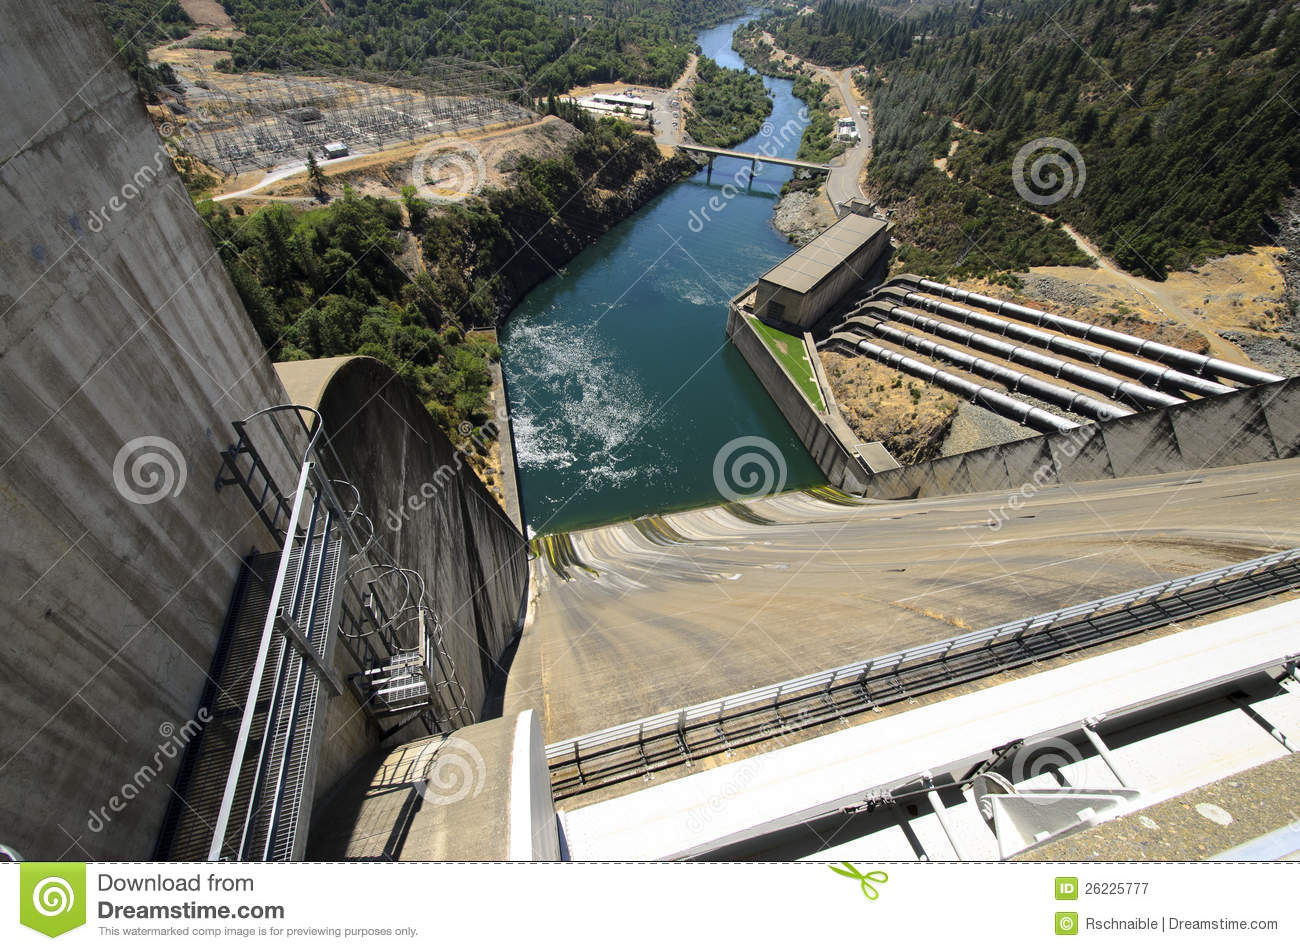 Shasta Hydro Dam And Spillway, USA Royalty Free Stock Photography.